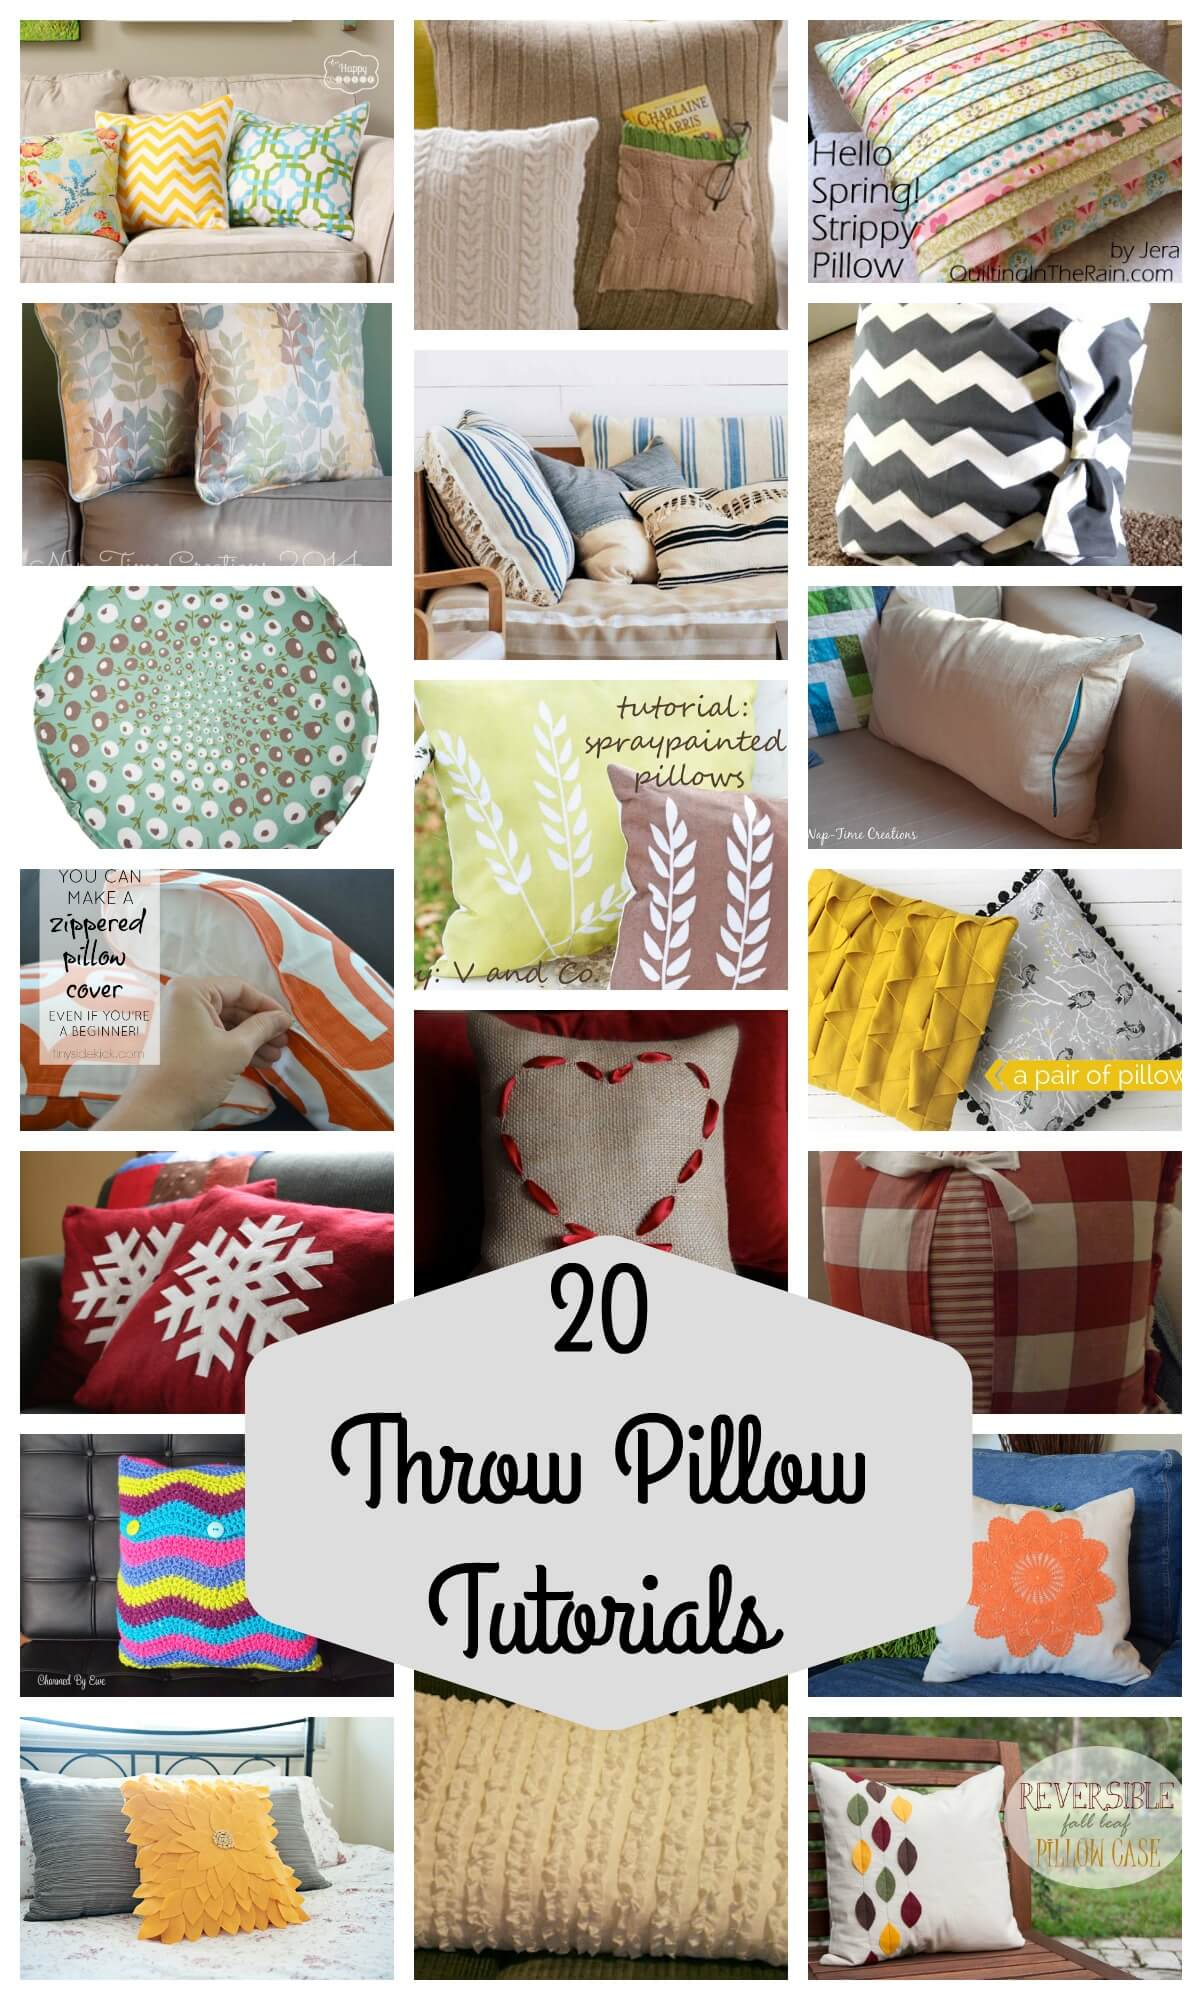 20 Throw Pillow Tutorials Compiled by Nap Time Creations